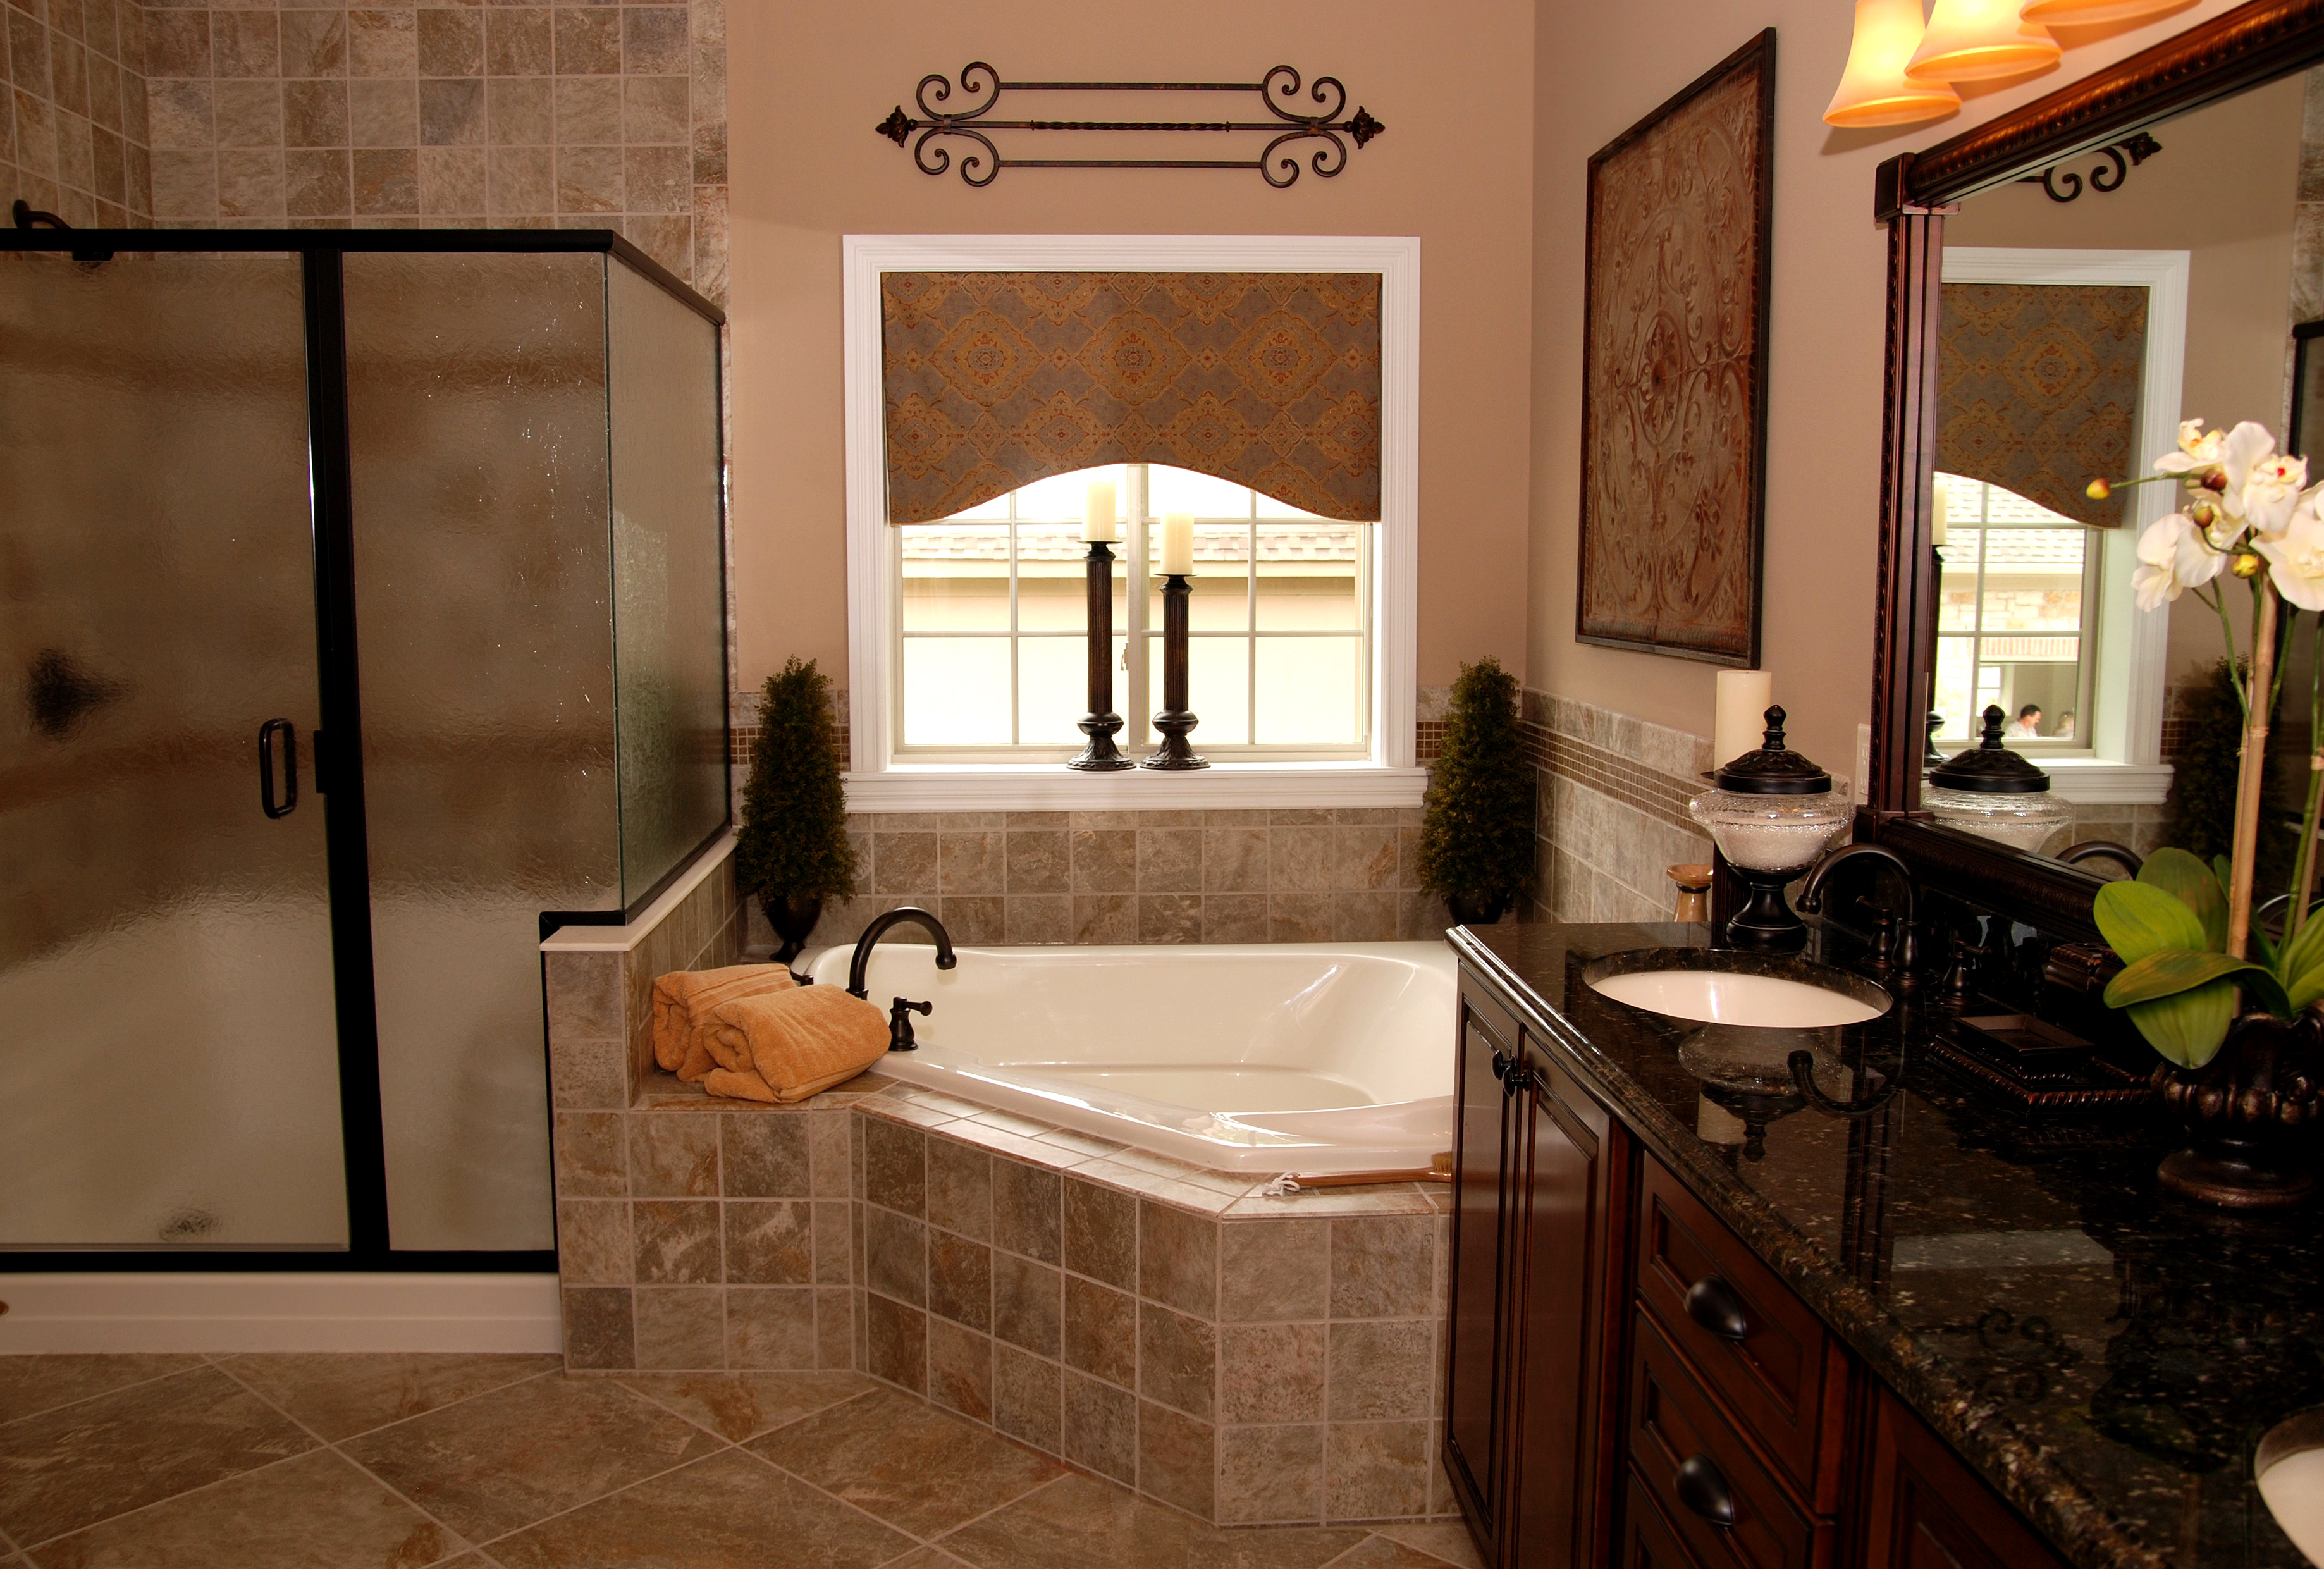 40 wonderful pictures and ideas of 1920s bathroom tile designs Small house bathroom design